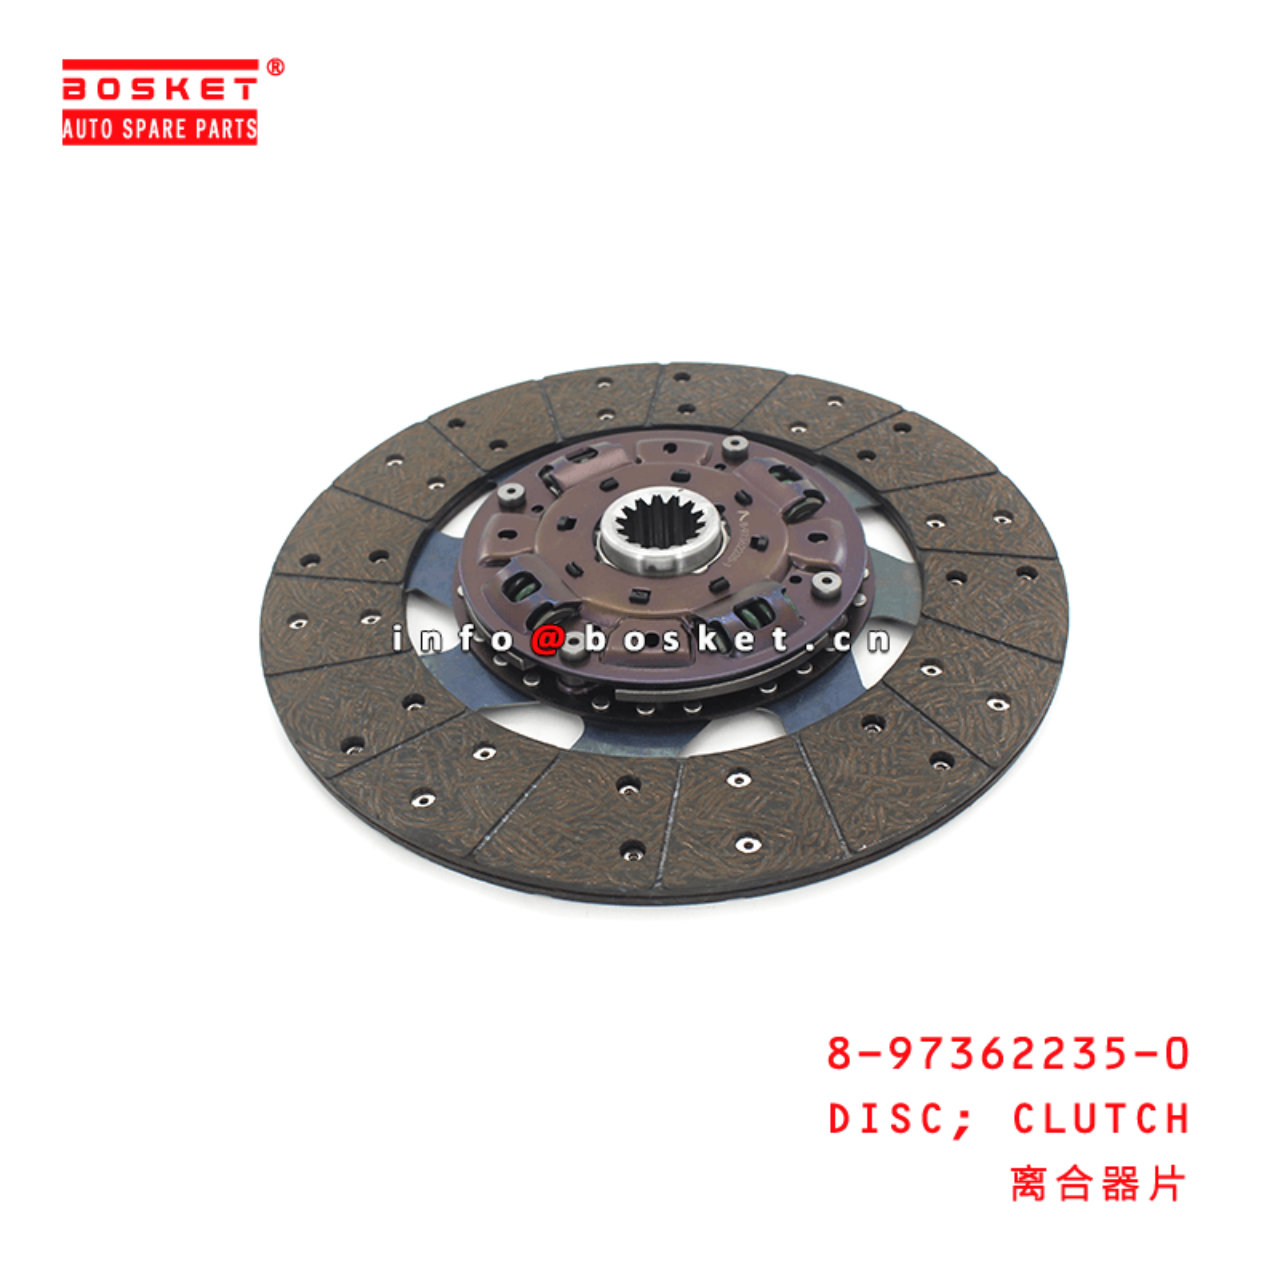 8-97362235-0 Clutch Disc 8973622350 Suitable for ISUZU 700P